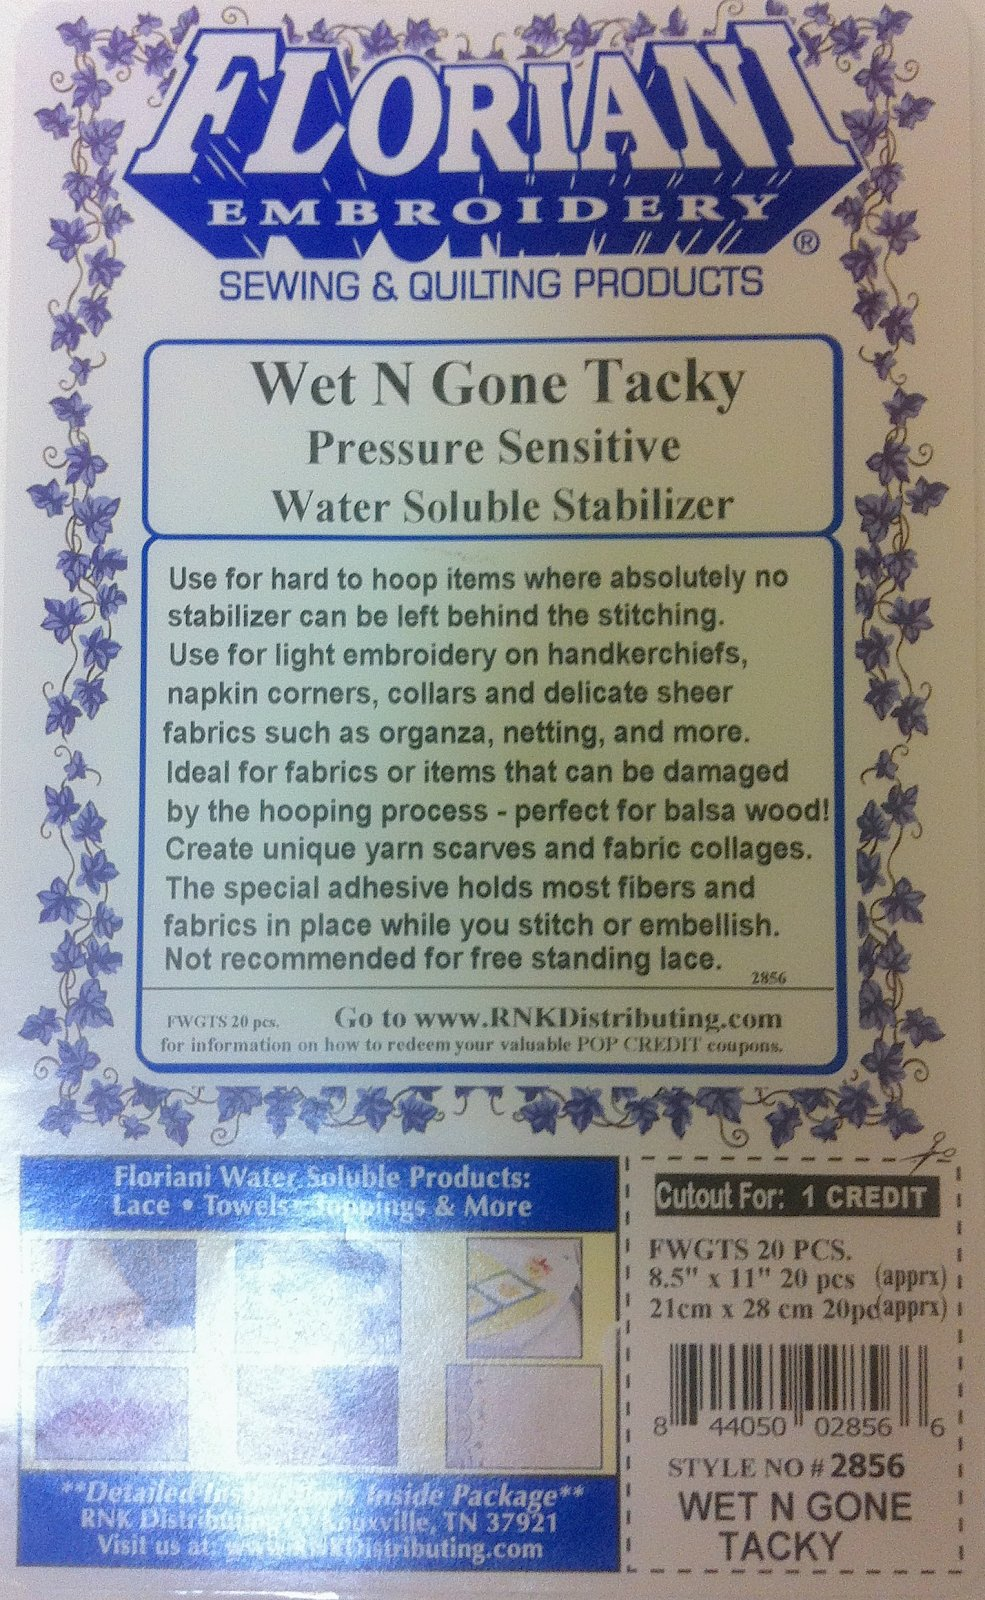 Wet N Gone Tacky 8.5 X 11 Sheets 20 ct.